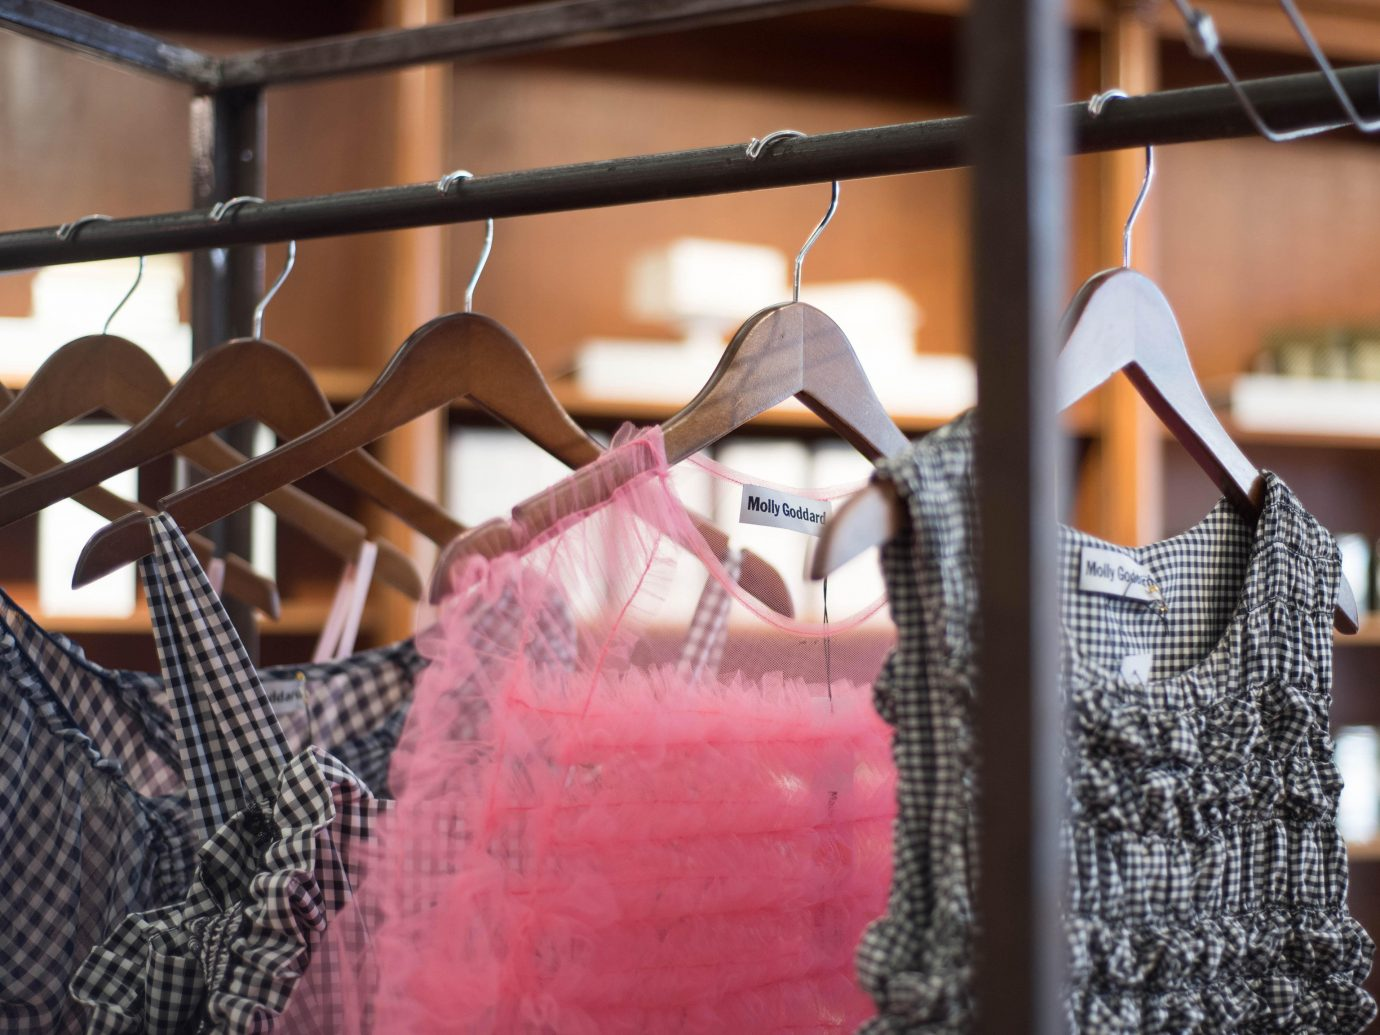 Dresses hanging at Worthwhile